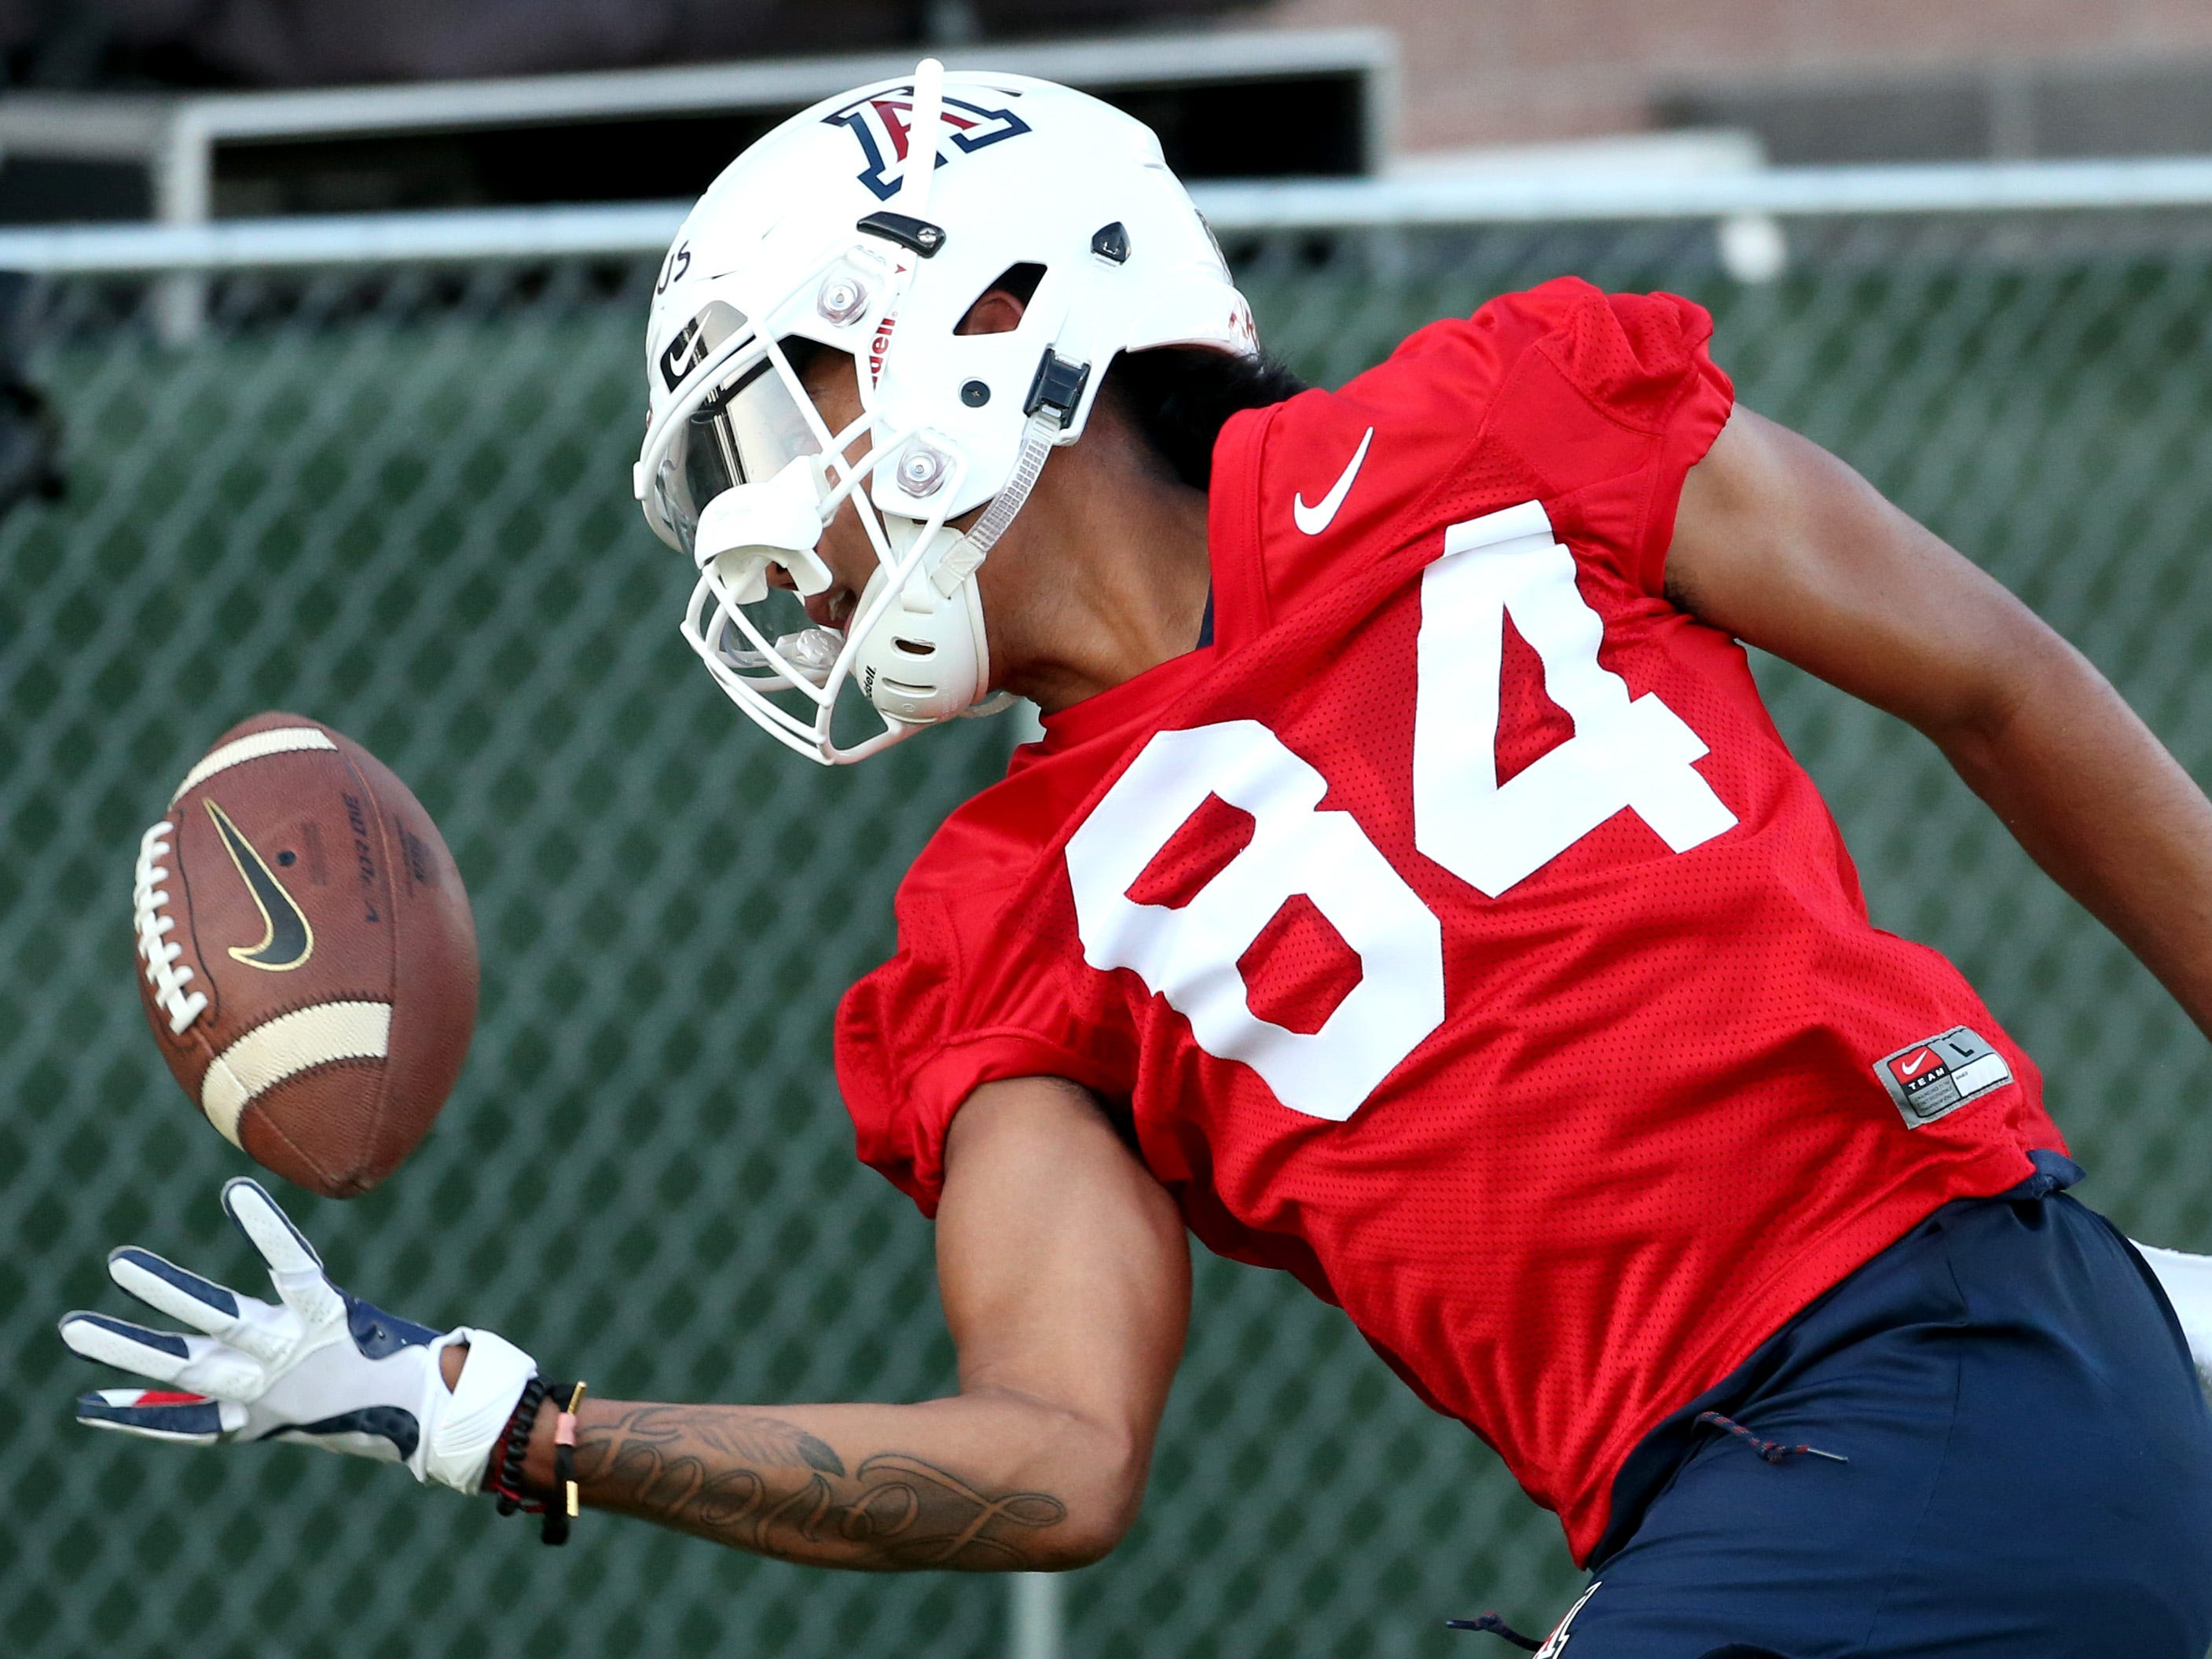 Wide receiver Thomas Marcus juggles the ball while trying to haul in a catch running route drills at the first day of practice for the University of Arizona, Friday, August 3, 2018, Tucson, Ariz.